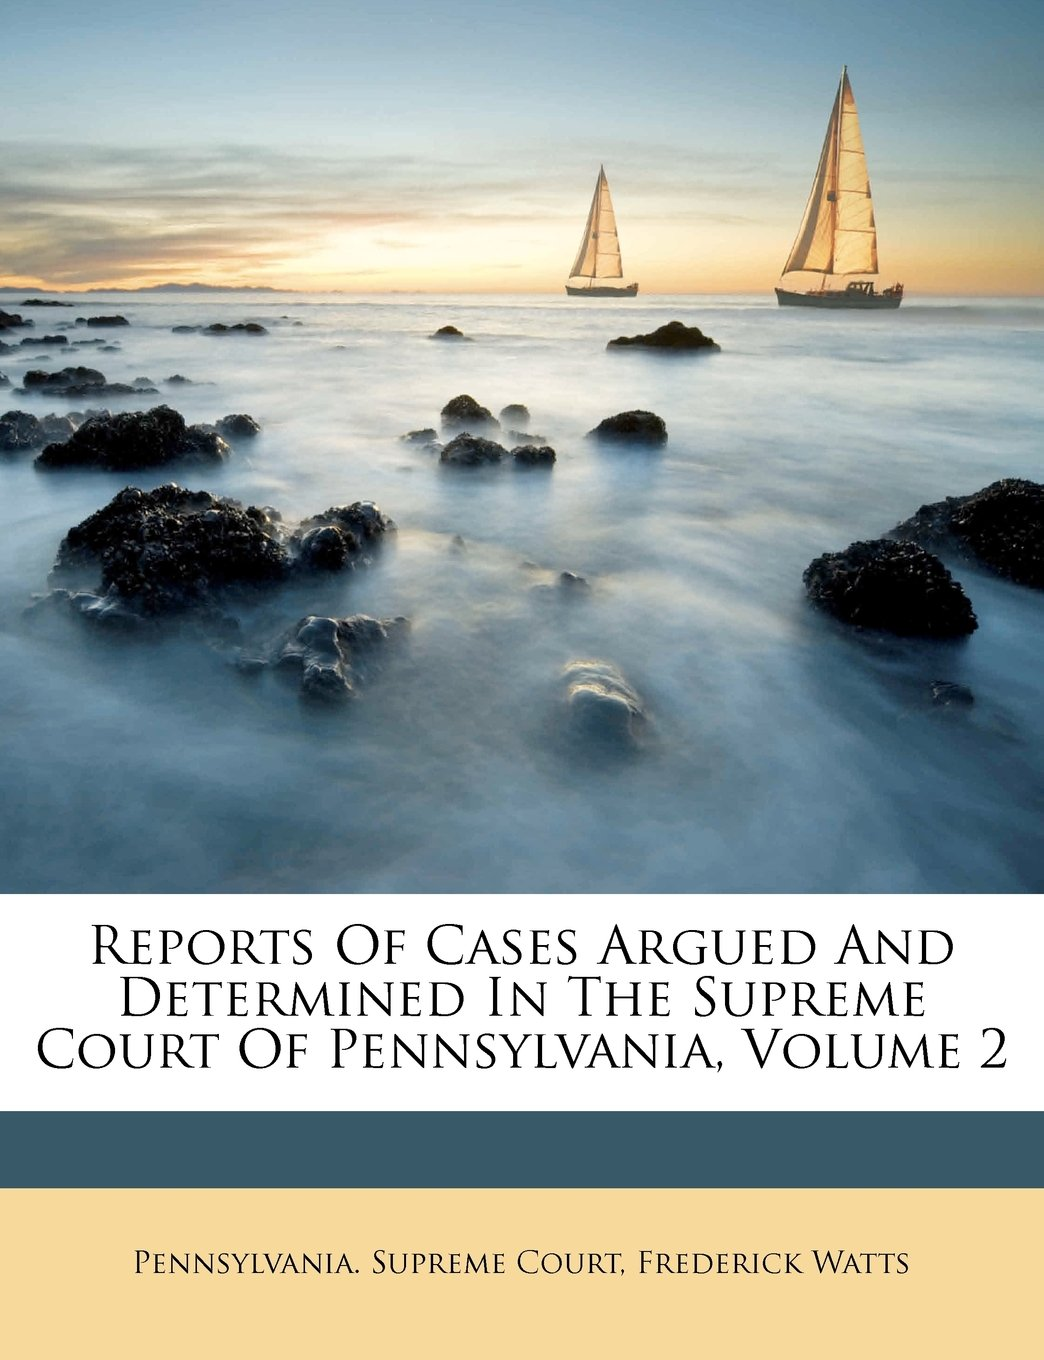 Read Online Reports Of Cases Argued And Determined In The Supreme Court Of Pennsylvania, Volume 2 PDF ePub fb2 ebook